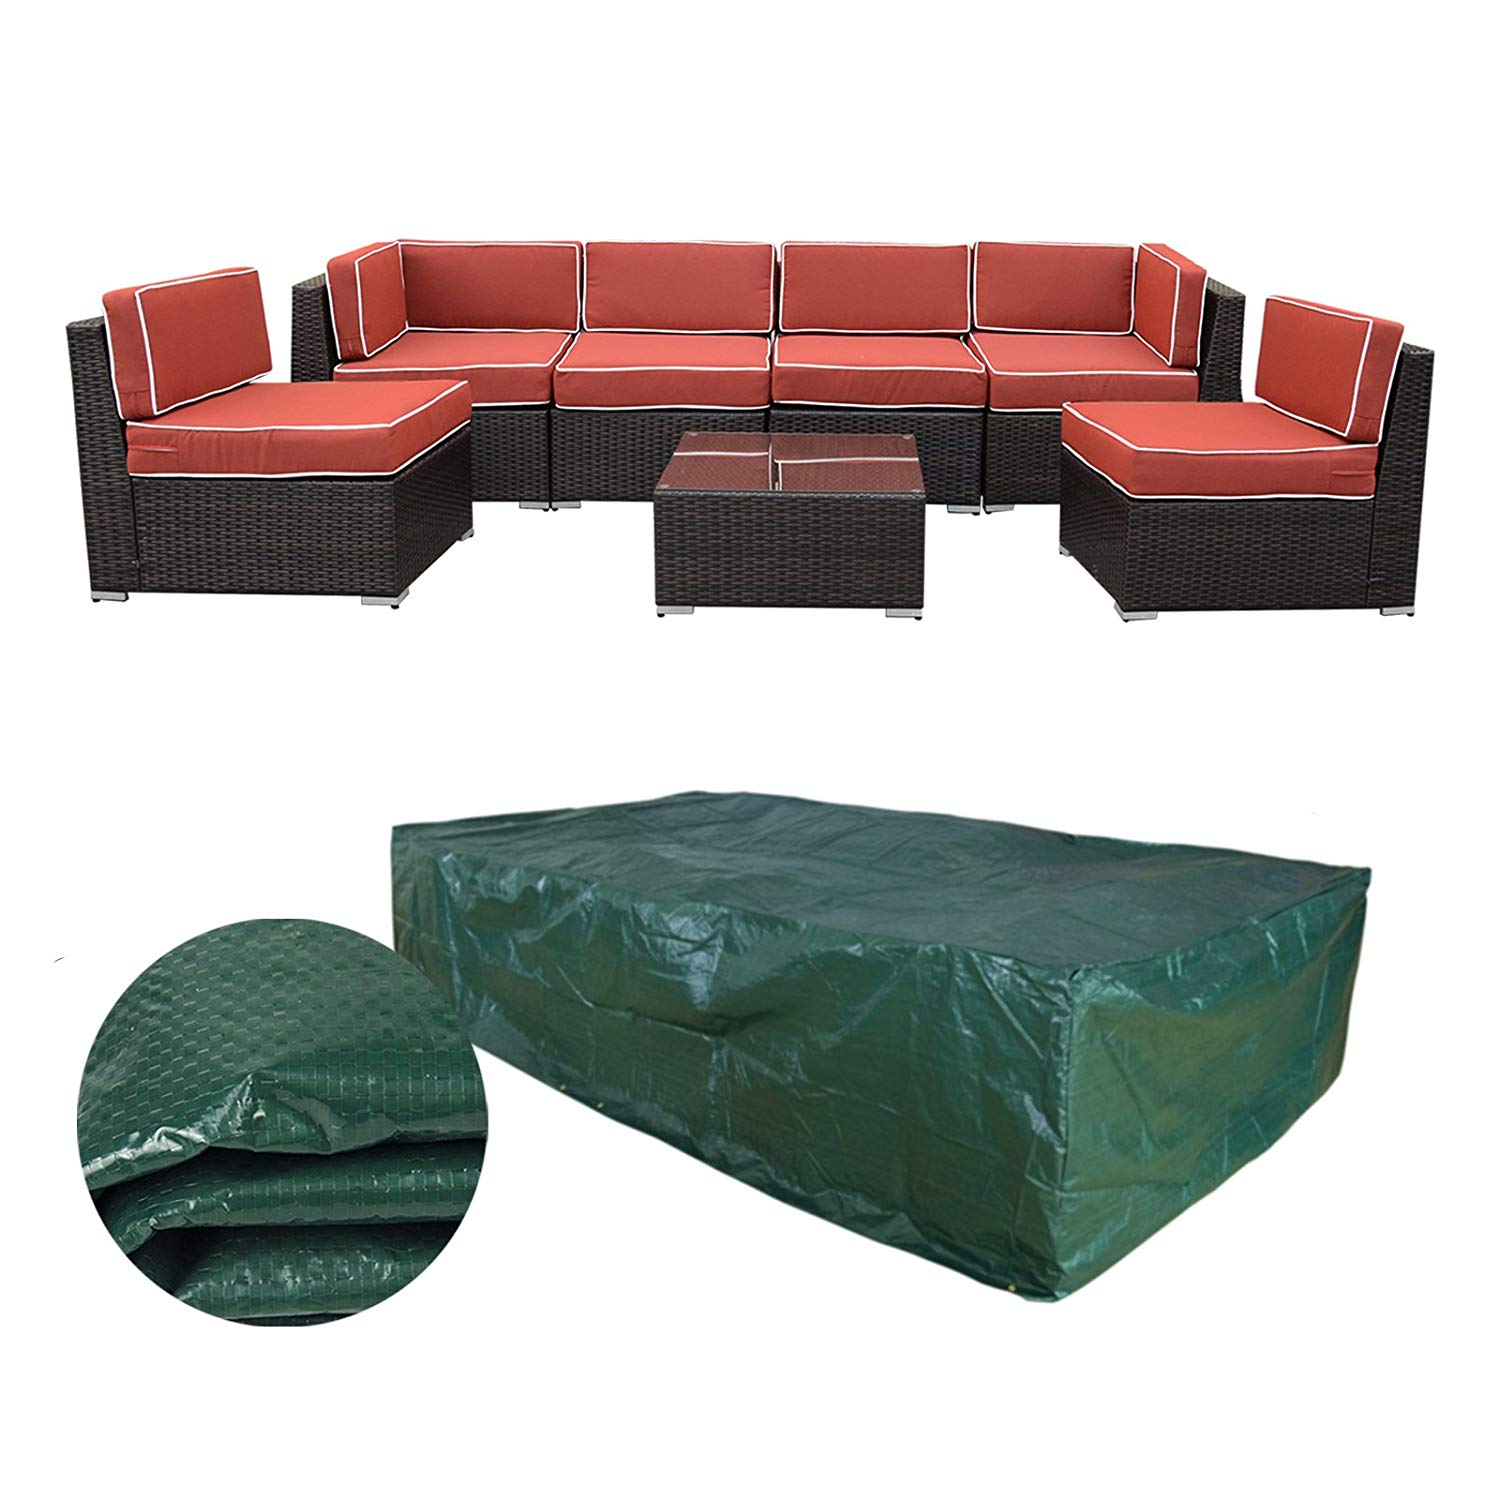 orno ttobe 126 x63 x28 inch extra large patio furniture cover for 7pieces rattan wicker furniture sofa set waterproof